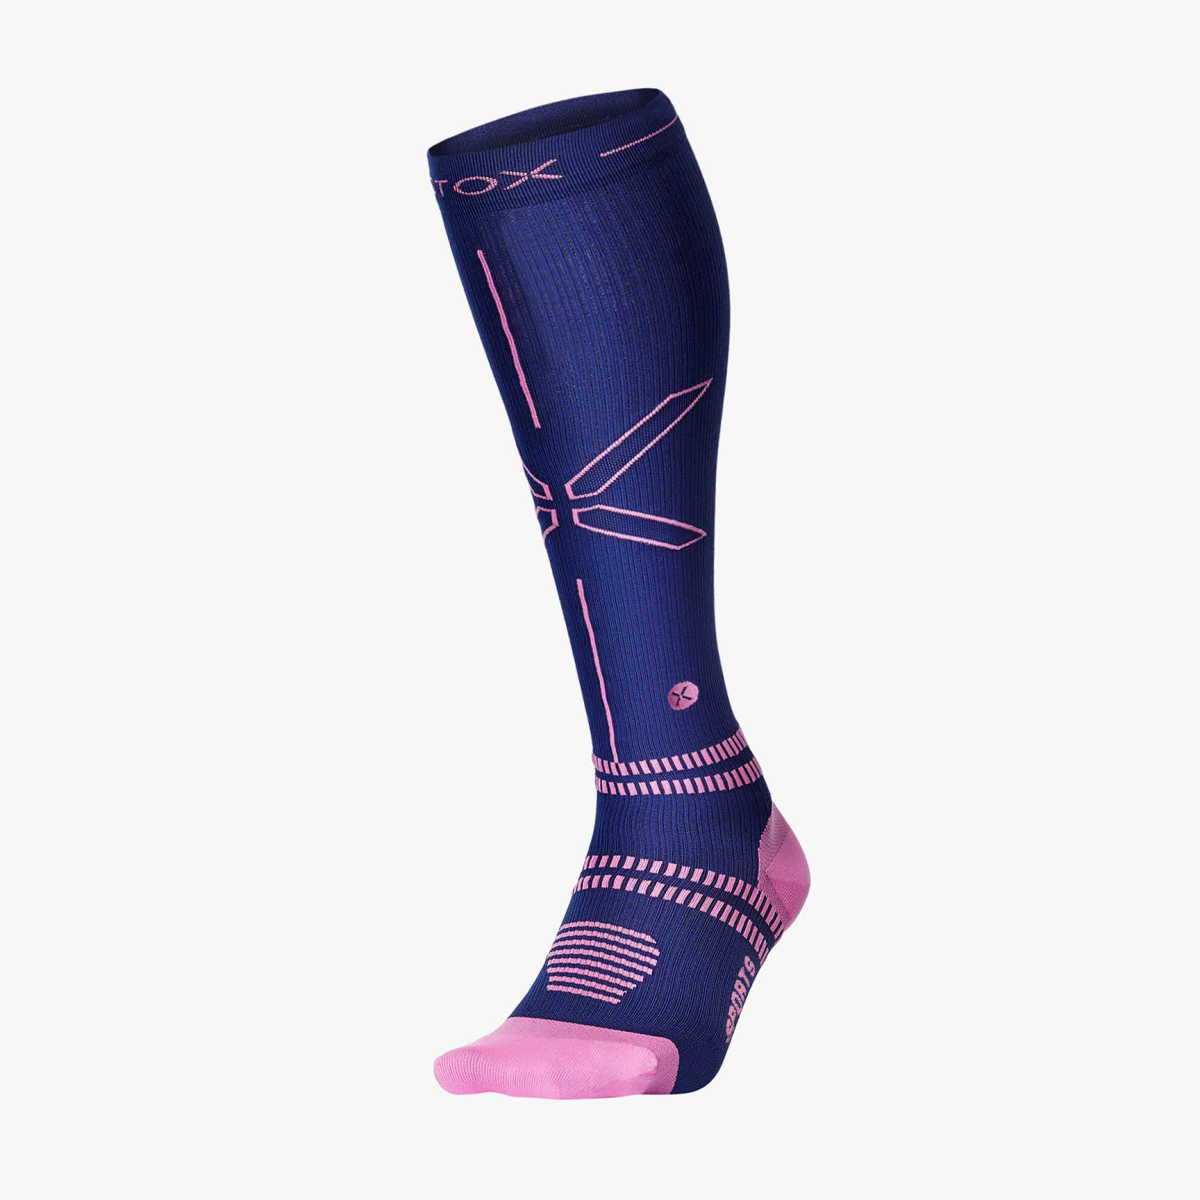 Sports Socks Women - Dark Blue Pink